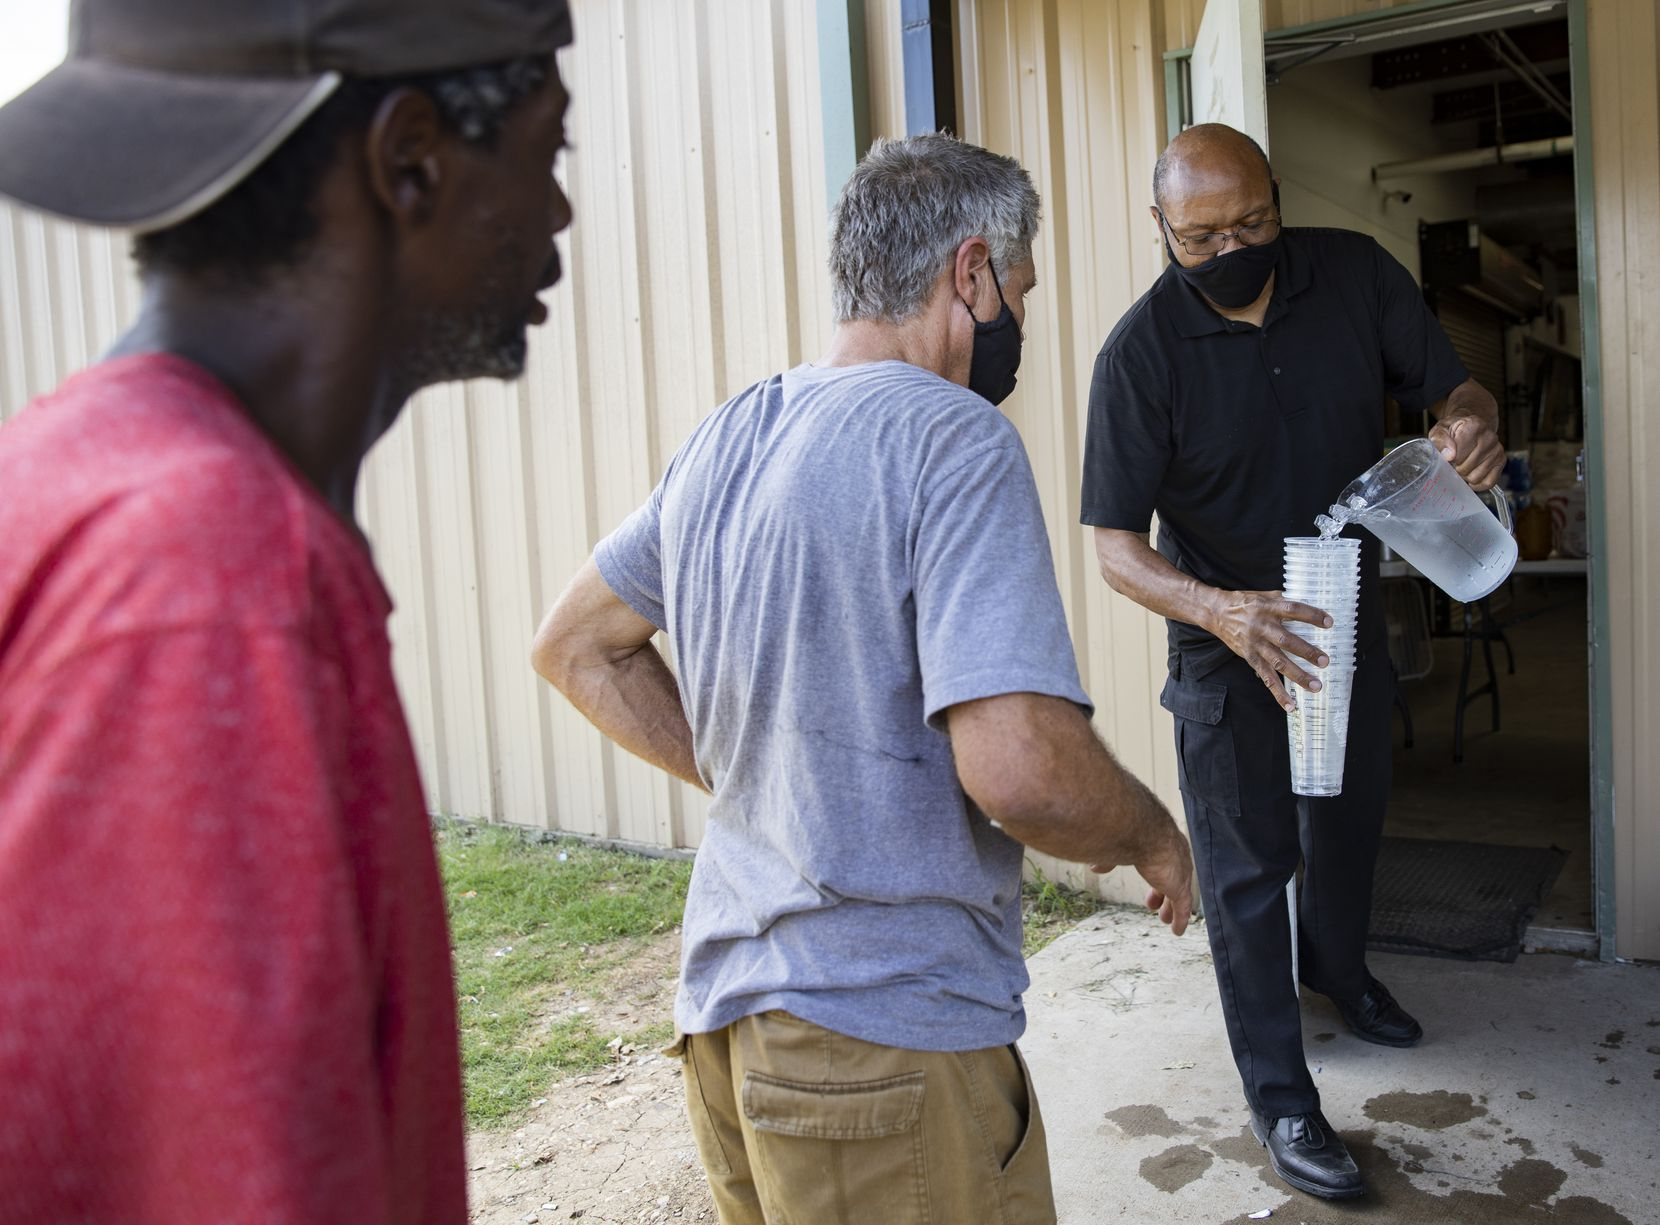 Pastor Chris Simmons hands out ice cold water to Cornerstone clients.